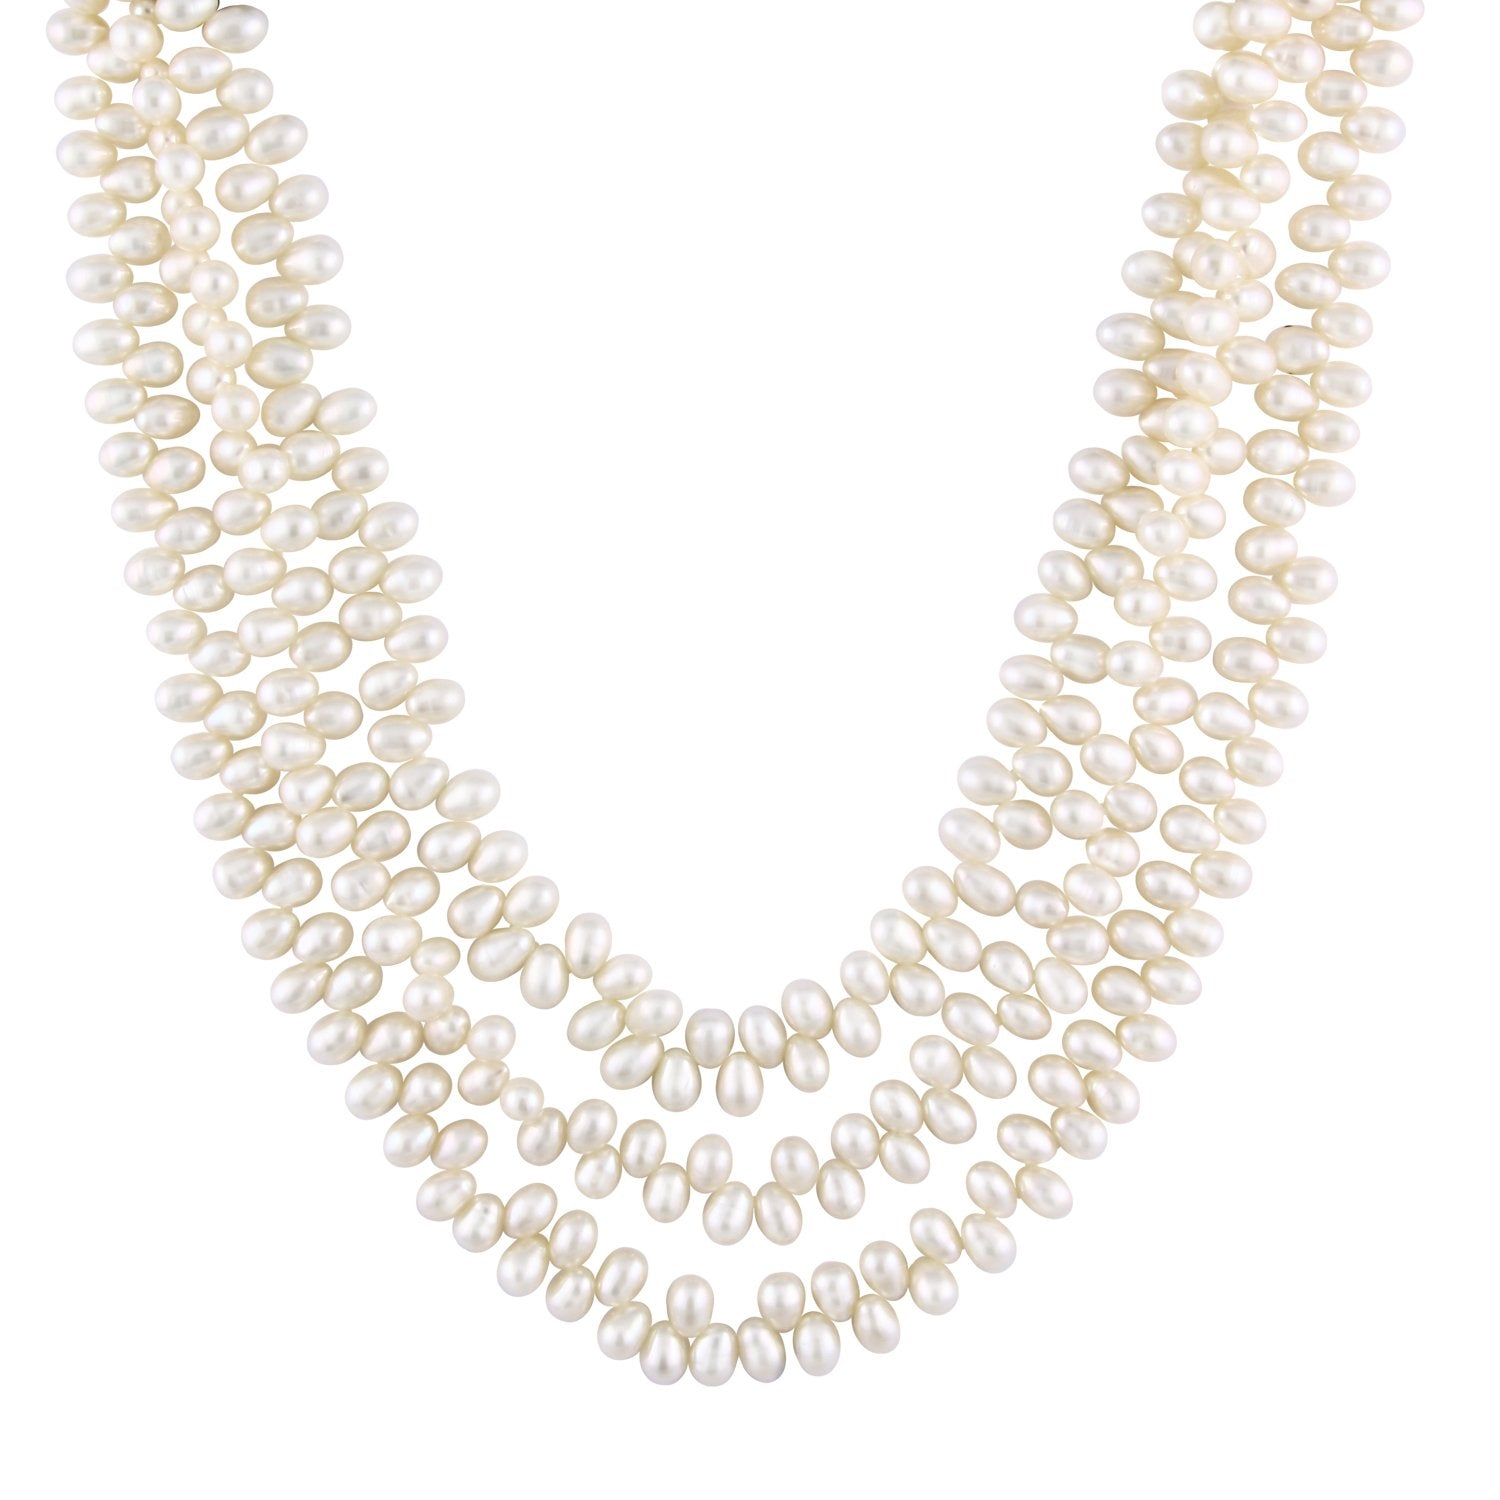 Fabulous Designed Endless Pearl Necklace